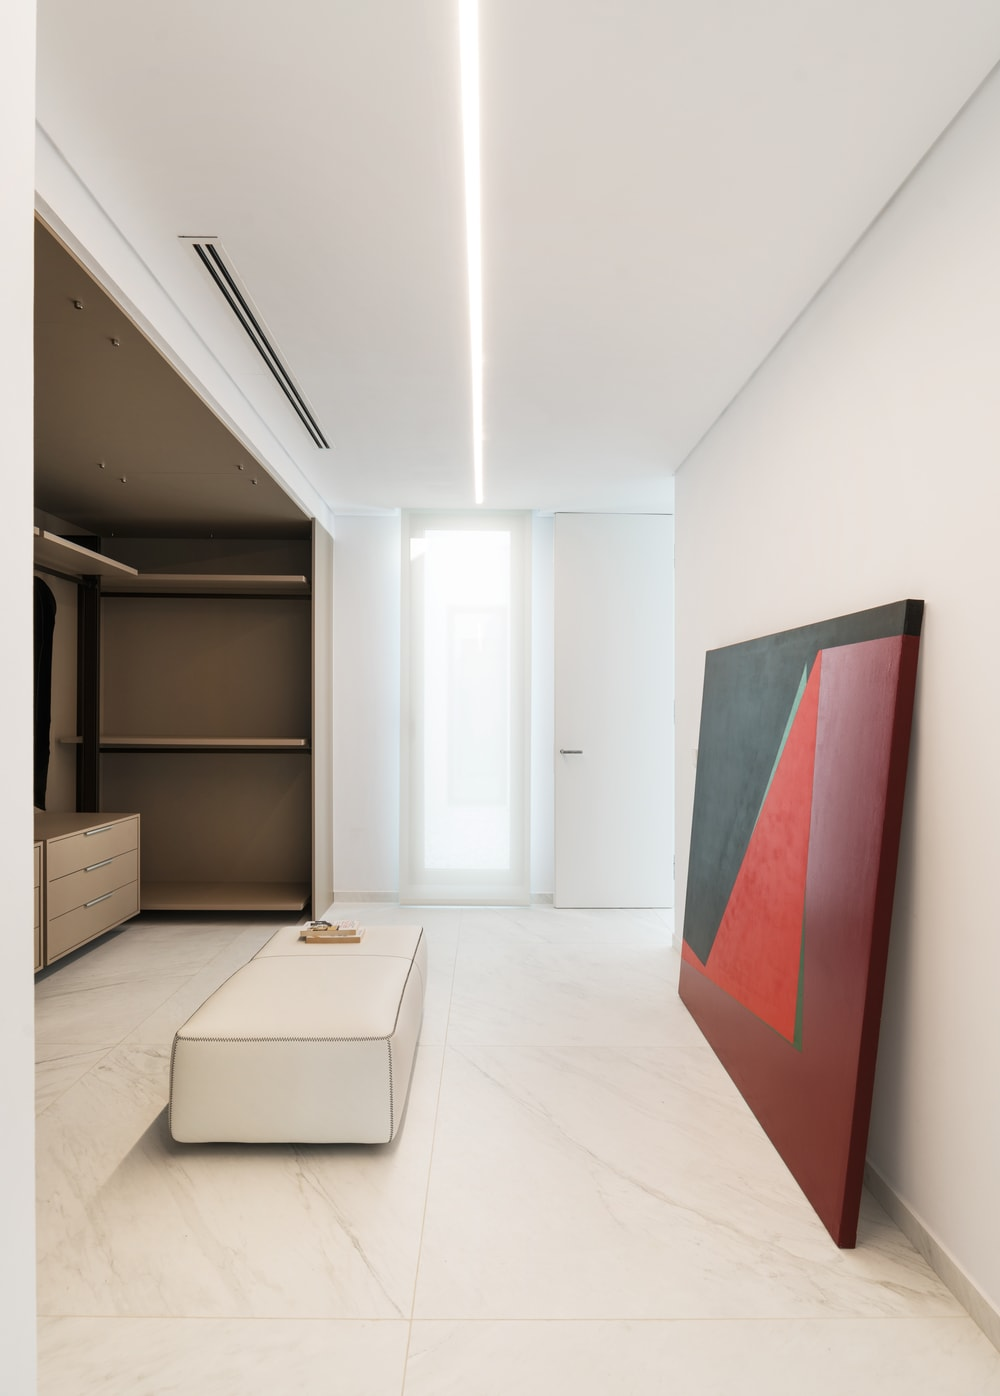 This is the walk-in closet of the house with built-in shelves and cabinetry as well as a cushioned white bench in the middle adorned by a large colorful painting.